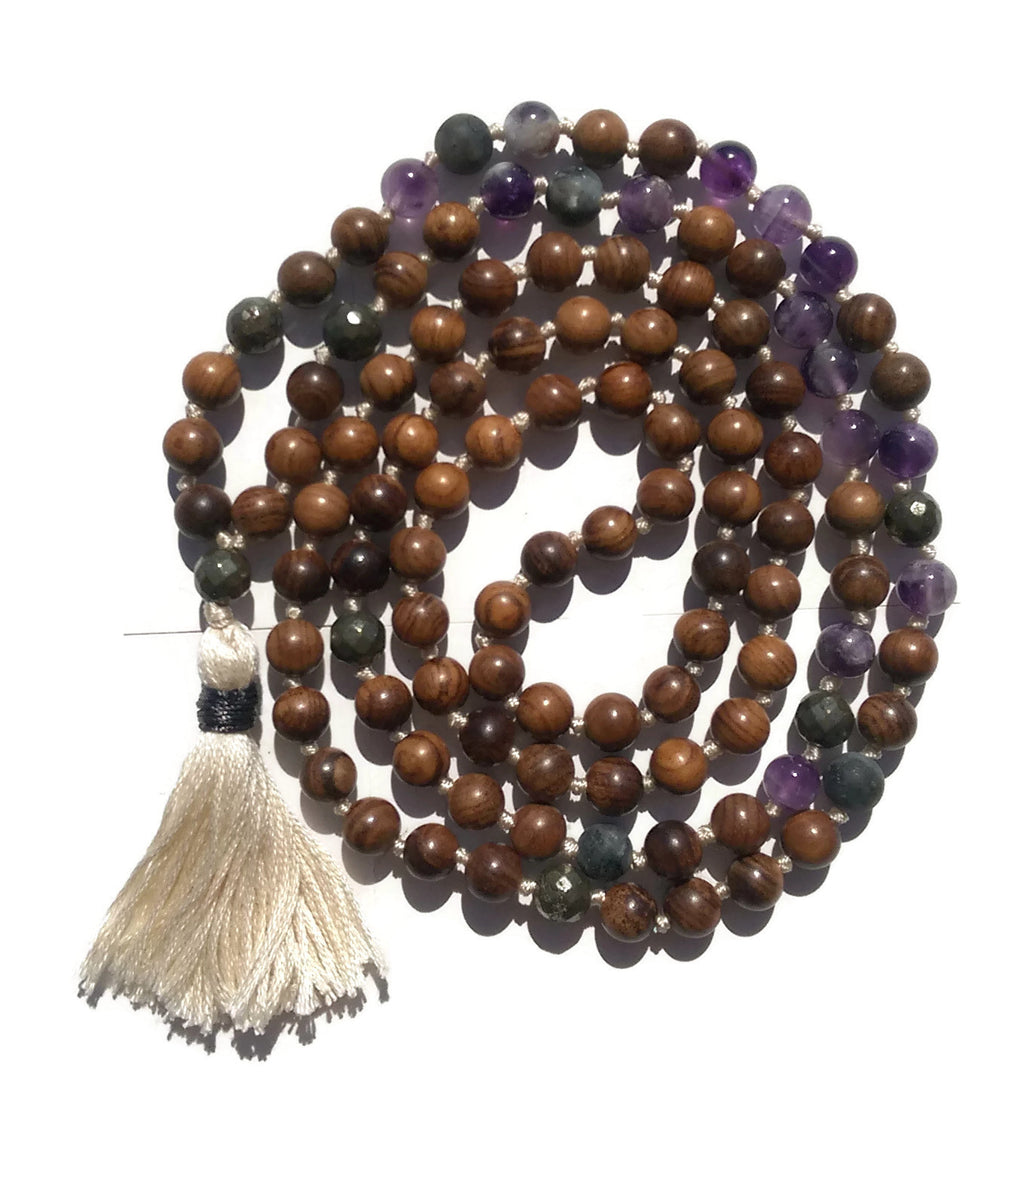 Pure Collection 8mm Pear Wood Amethyst Labradorite Pyrite Traditional Hand Knotted 108 Bead Meditation Mala Necklace Crown Chakra Yoga